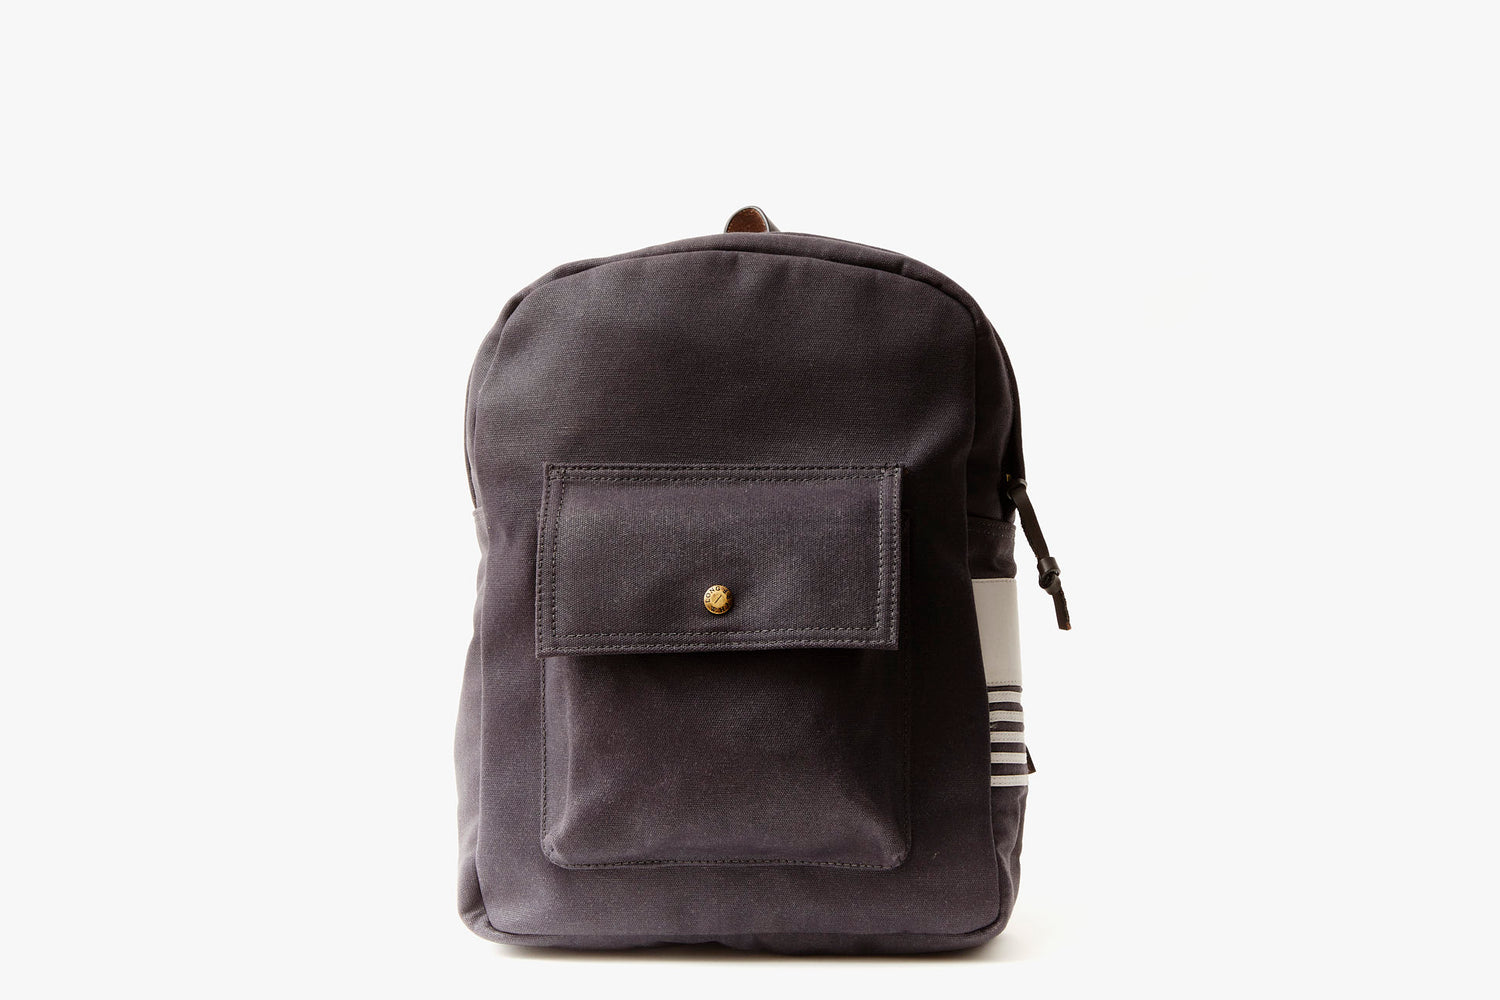 Navy Long Wharf Supply Co. Ipswich Day Backpack - Navy - image of backpack standing up, showing front pocket detail and gold-toned snap closure